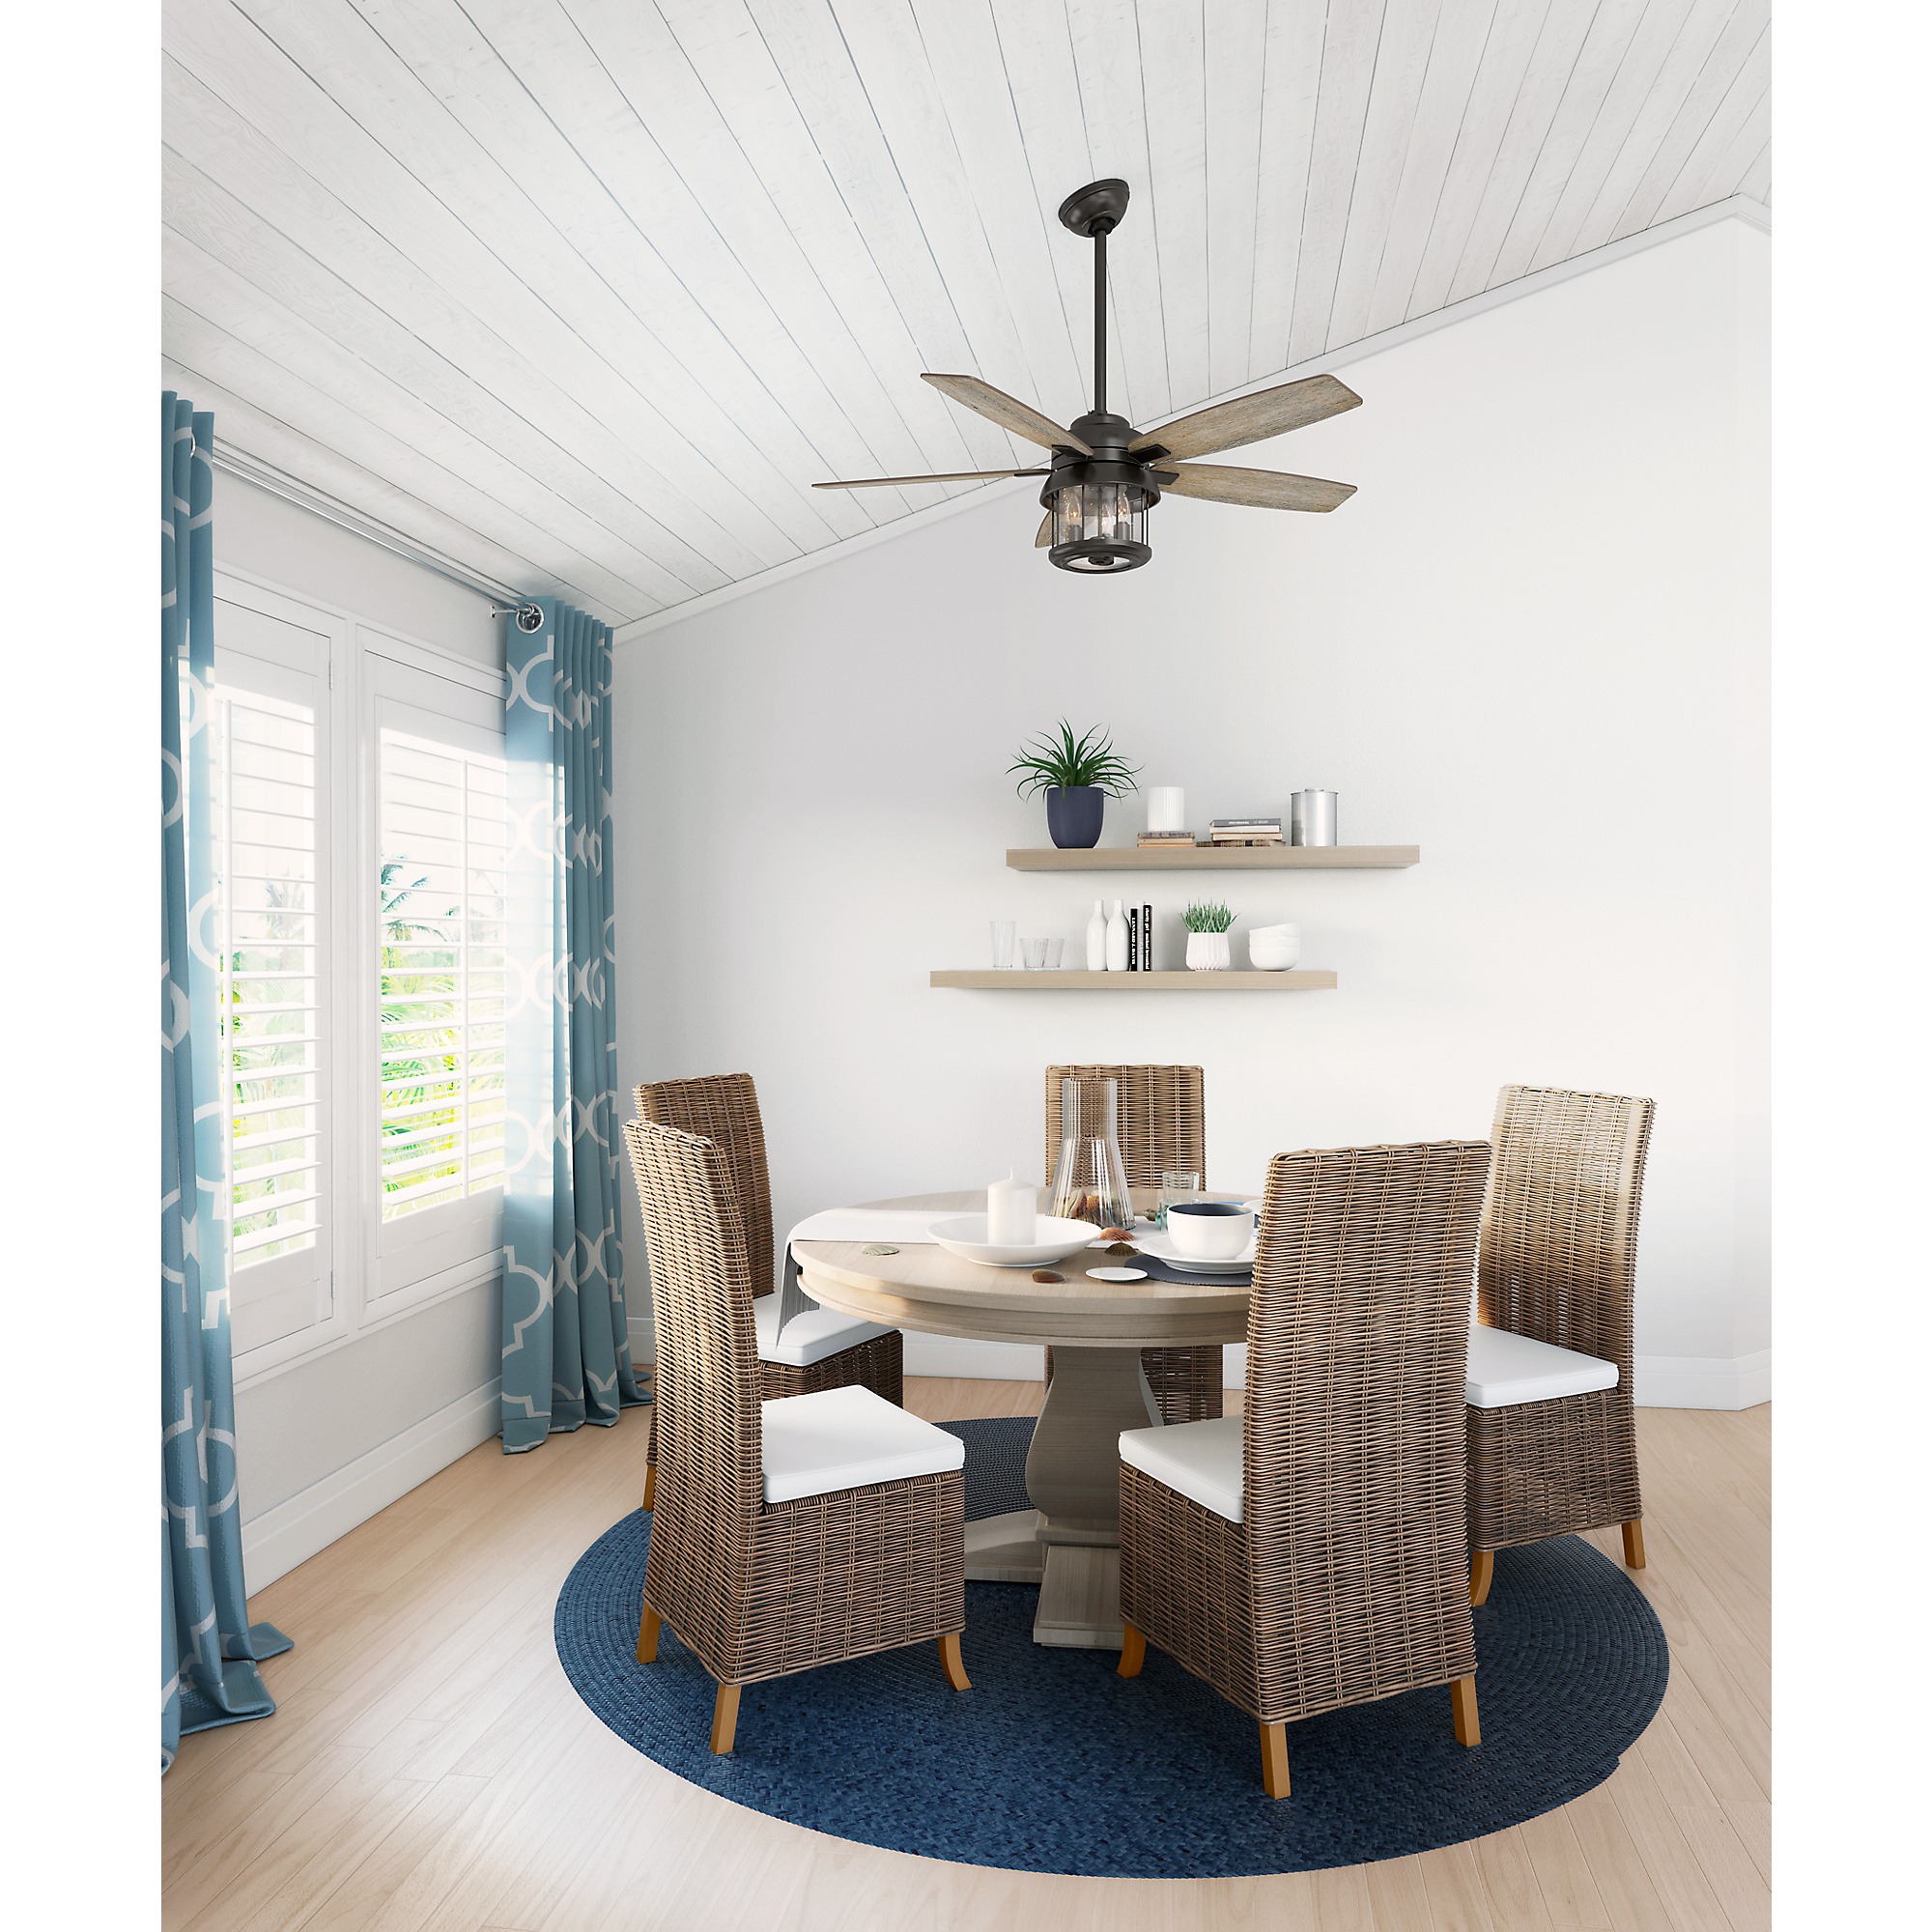 Coral Bay Indoor Outdoor Ceiling Fan With Light By Hunter